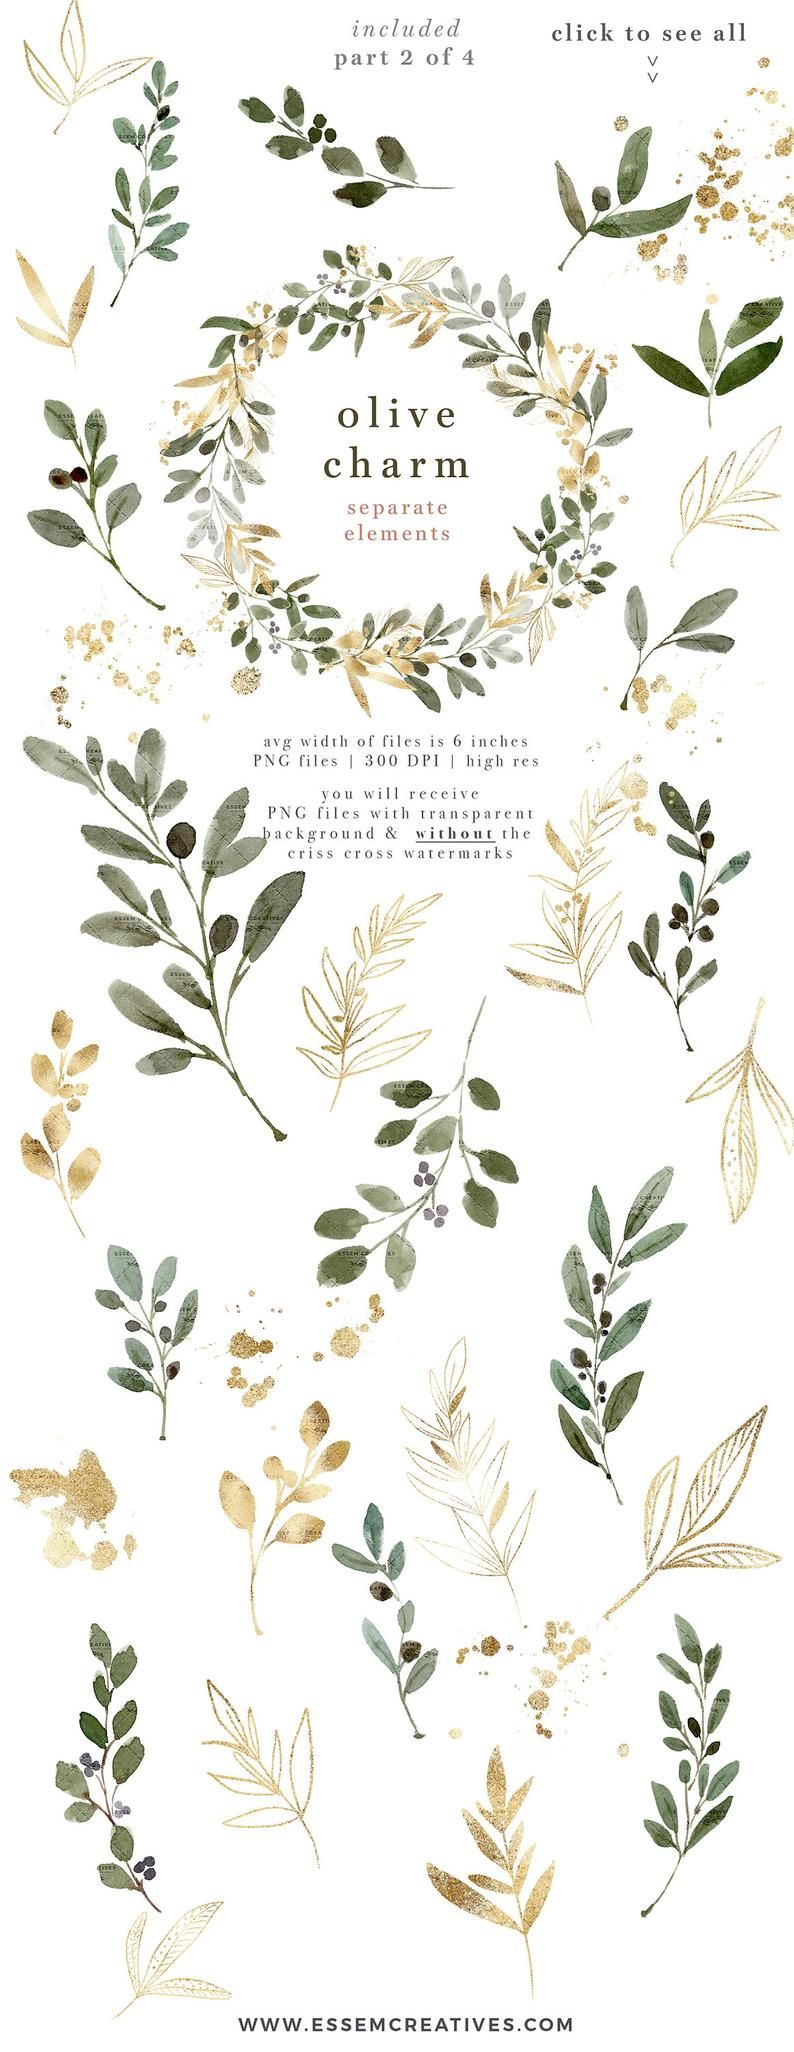 Watercolor Olive Branch Clipart Olive Leaves Clipart Wreath Etsy In 2021 Clip Art Olive Branch Interior Design Rustic